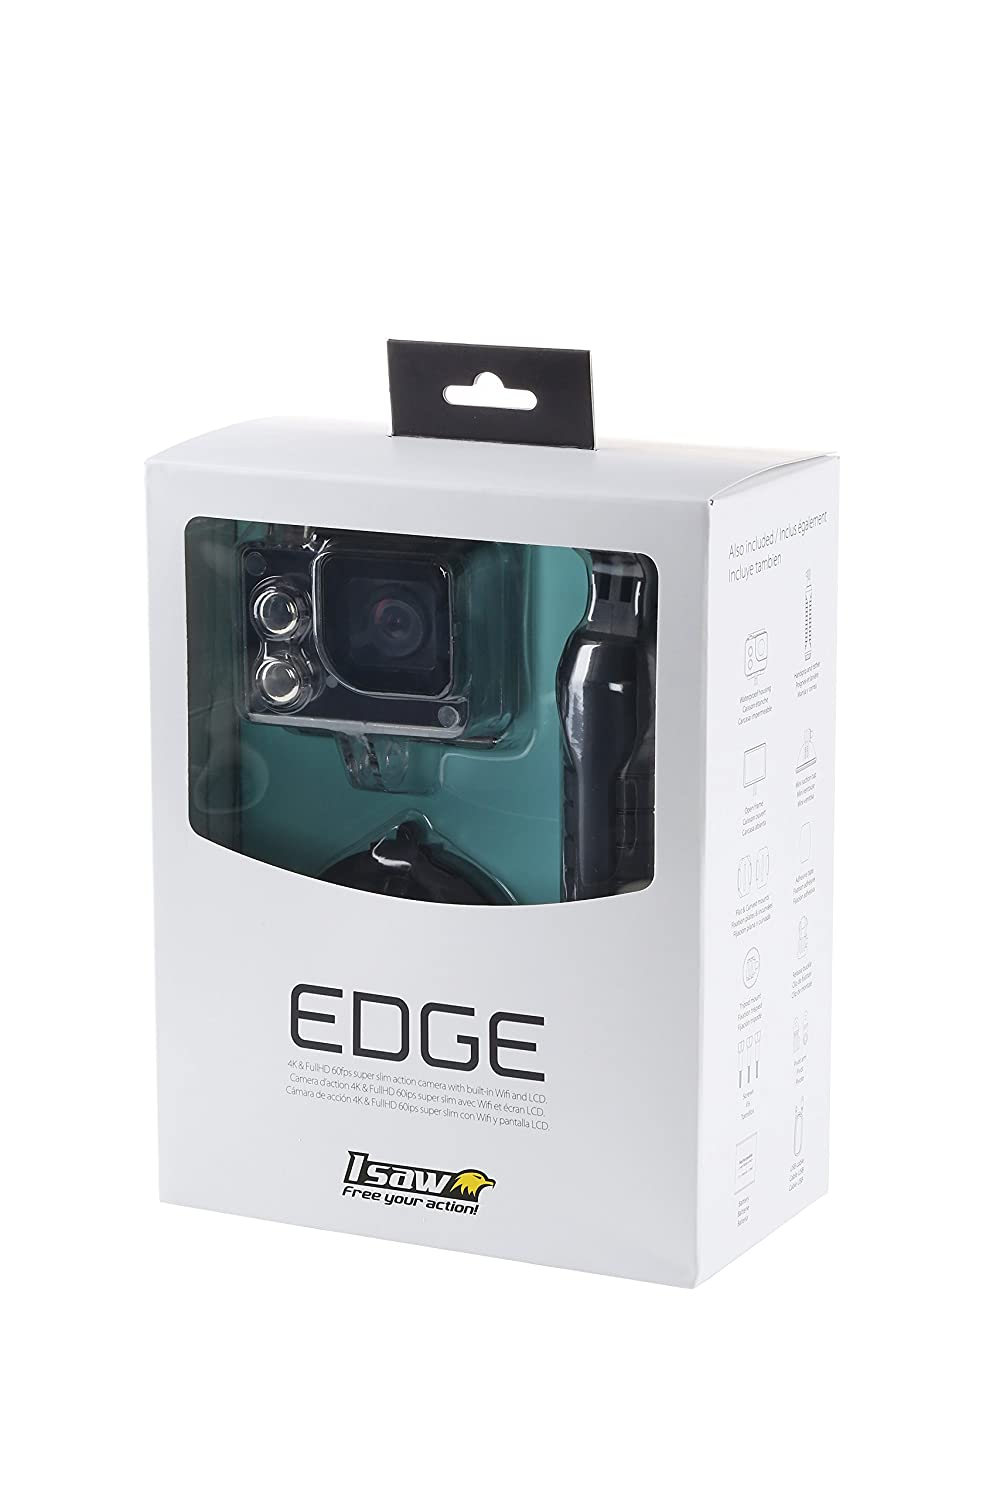 Amazon.com : INBYTE full HD action cam wearable camera 40m waterproof ISAW EDGE : Electronics